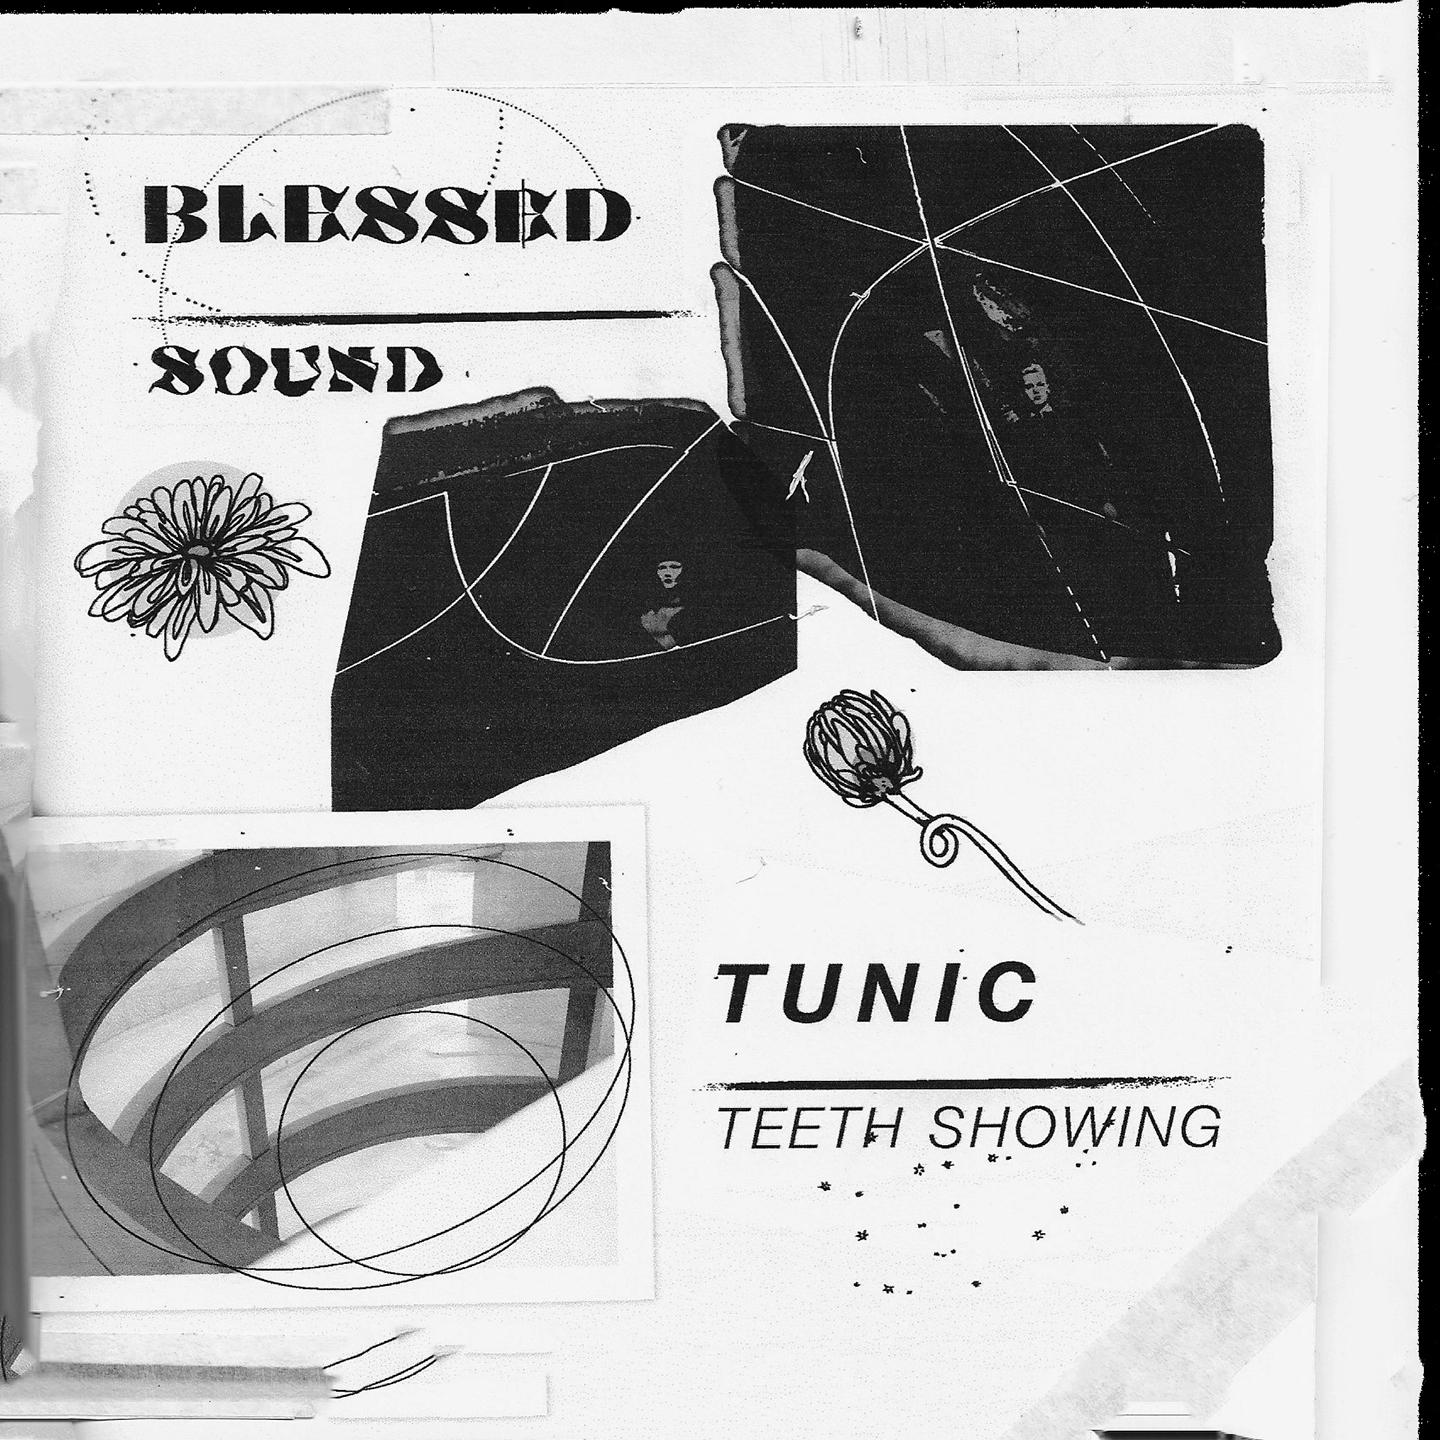 "Pumped to be releasing the split-7"" from two of Western Canada's fines,  Blessed  and  Tunic!    Head over to   Stereogum   for the premiere of Sound / Teeth Showing and catch them on their ridiculous   upcoming US/CAN tour  ."